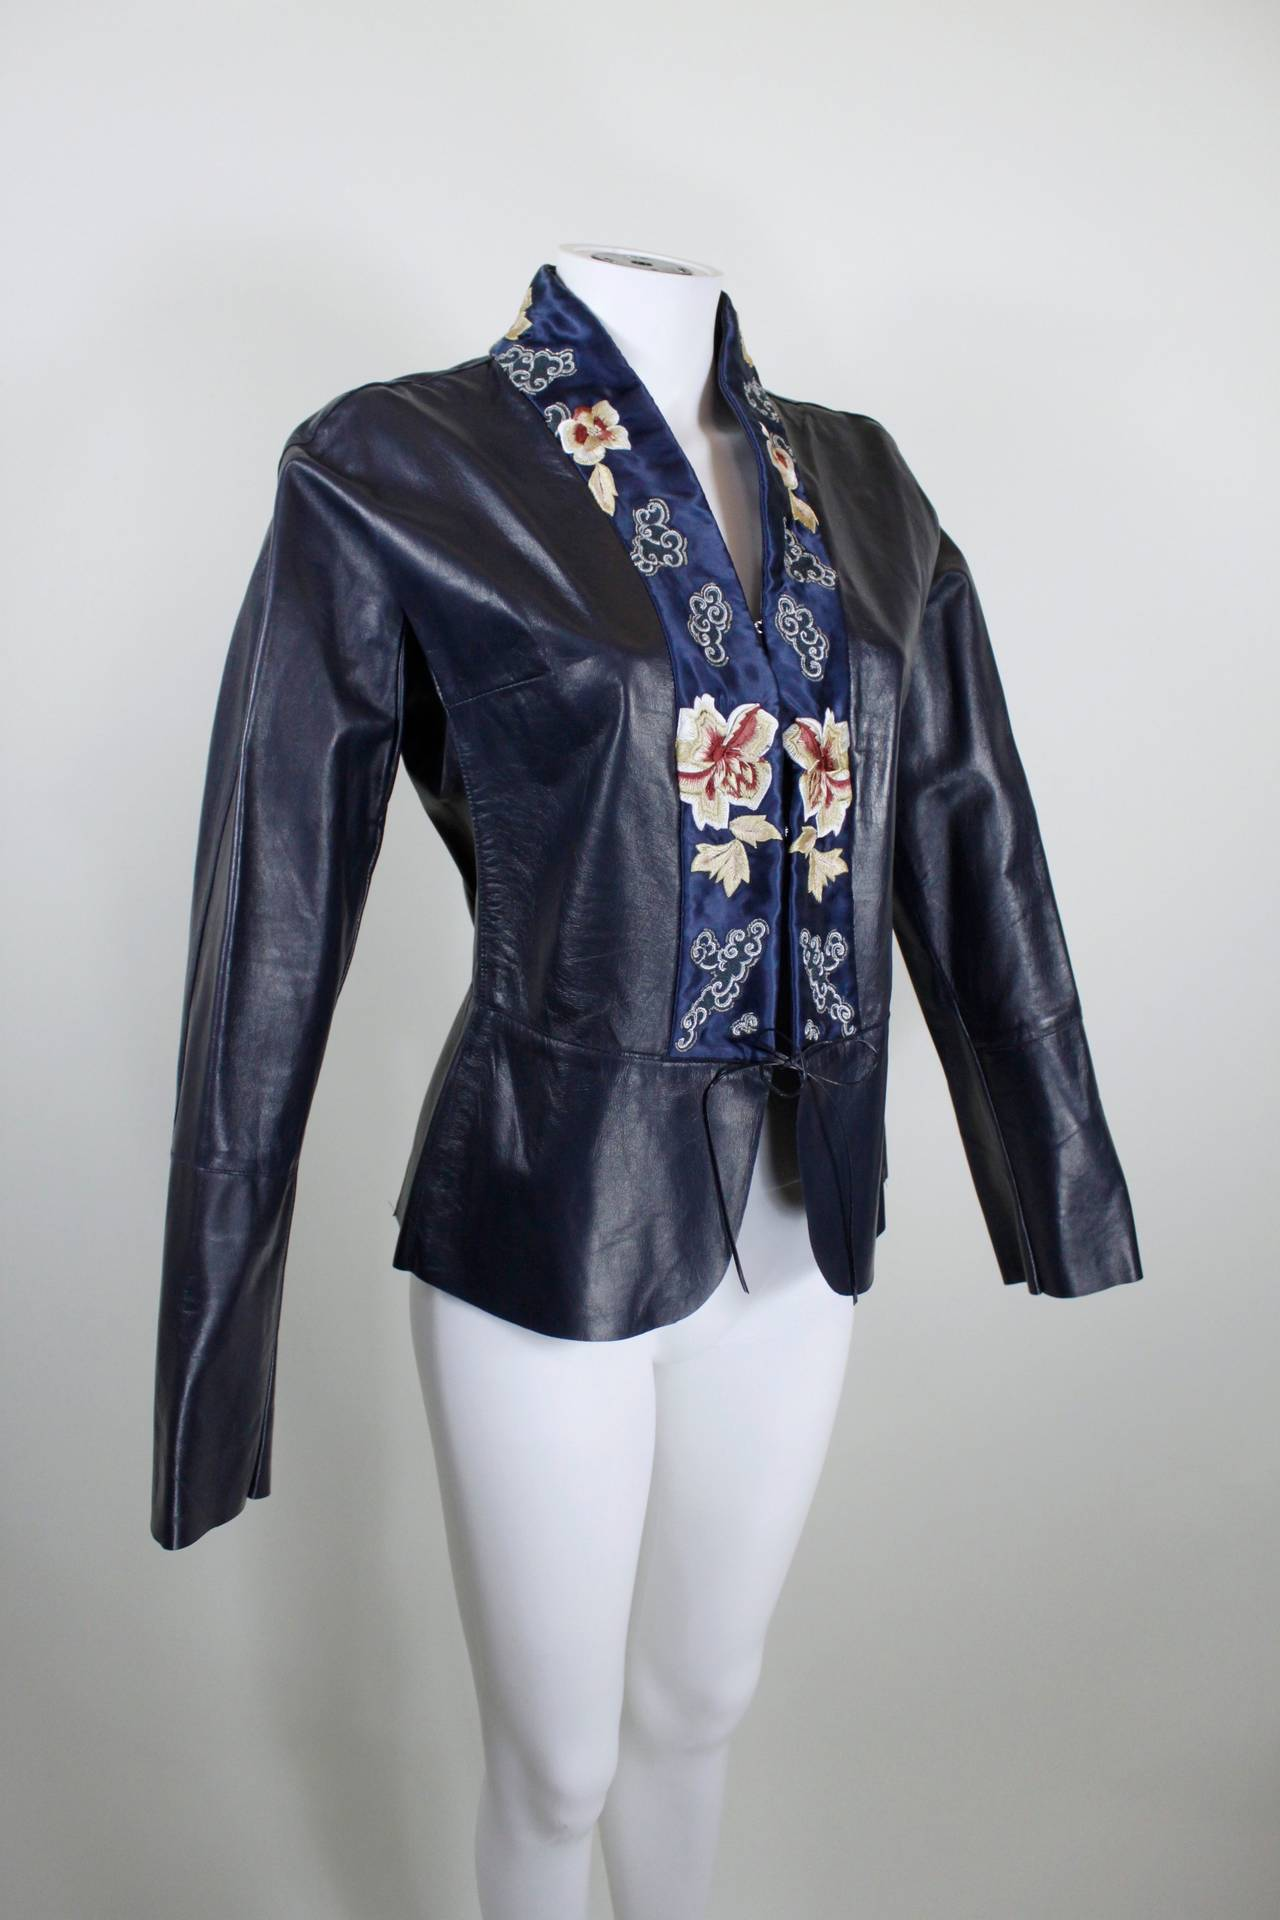 A gorgeous jacket from Blumarine done in supple, lightweight navy leather. A kimono-style silk collar is embroidered with Japanese-inspired floral motifs. The jacket closes with two hook-and-eyes and a thin leather cord at the waist. A slight peplum